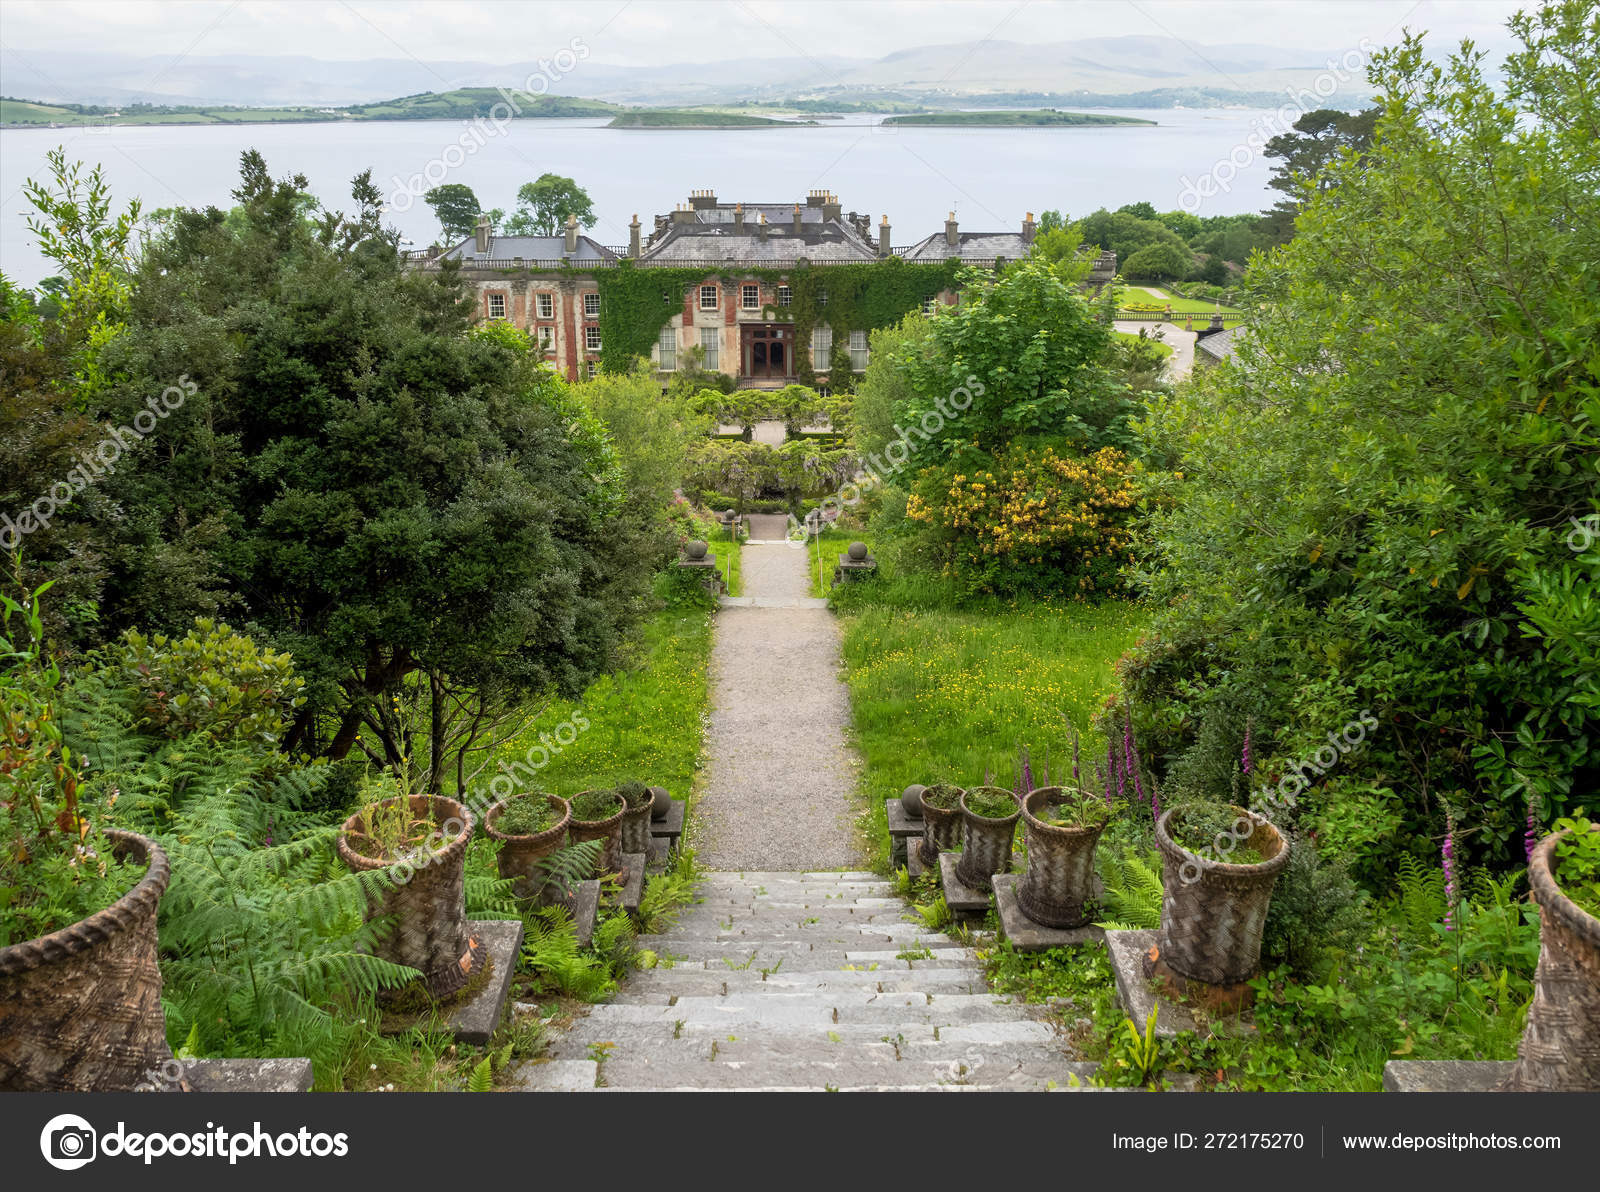 10 Best Bantry Hotels, Ireland (From $61) - sil0.co.uk